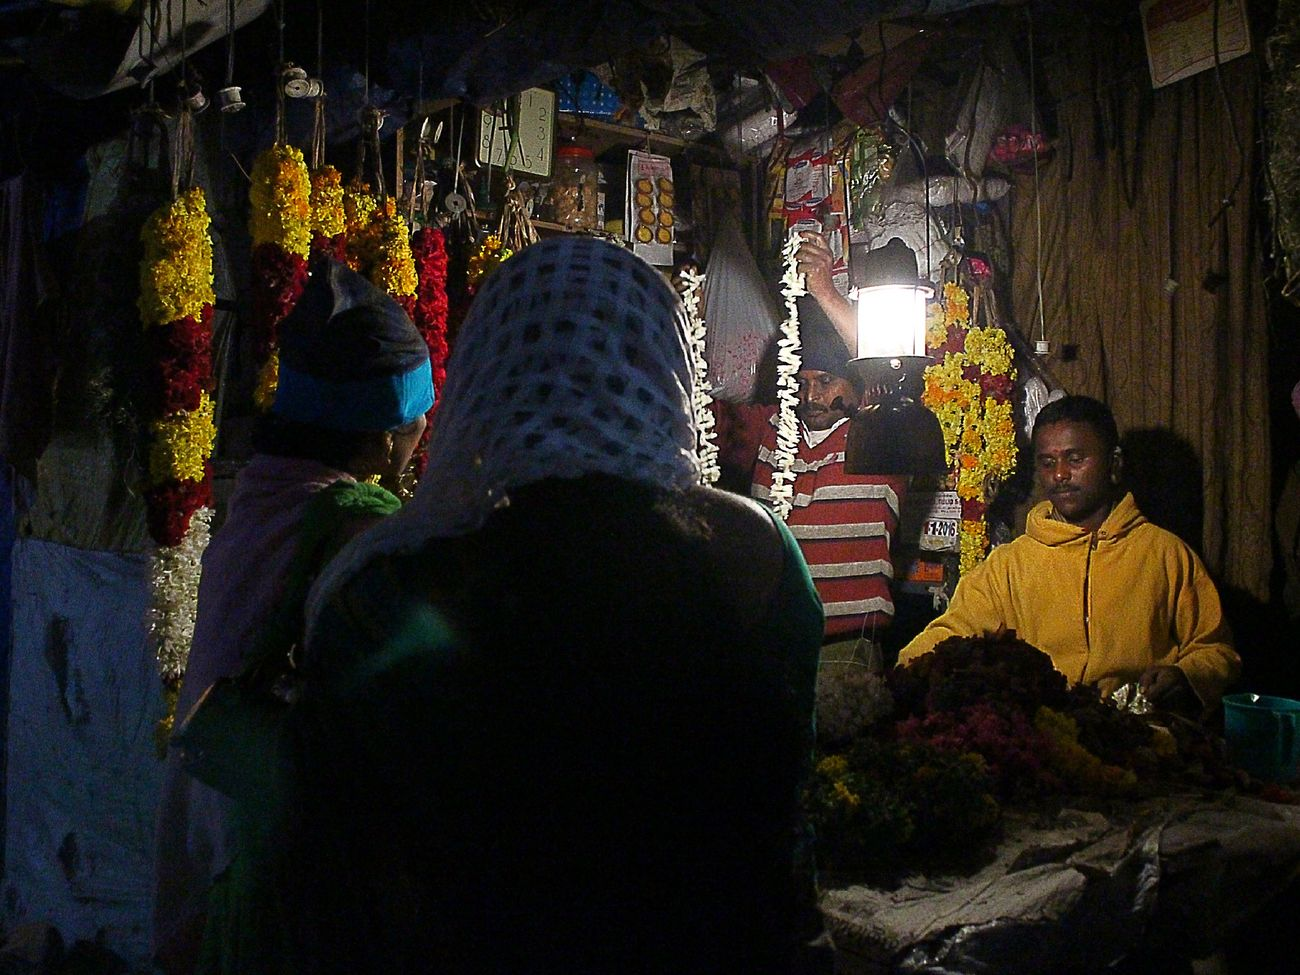 Telling Stories Differently India flowers florist occupation people random colors First Eyeem Photo Indian Florist Random Workers Everyday People Indian Culture  Nightworker Flowers Occupation Colors